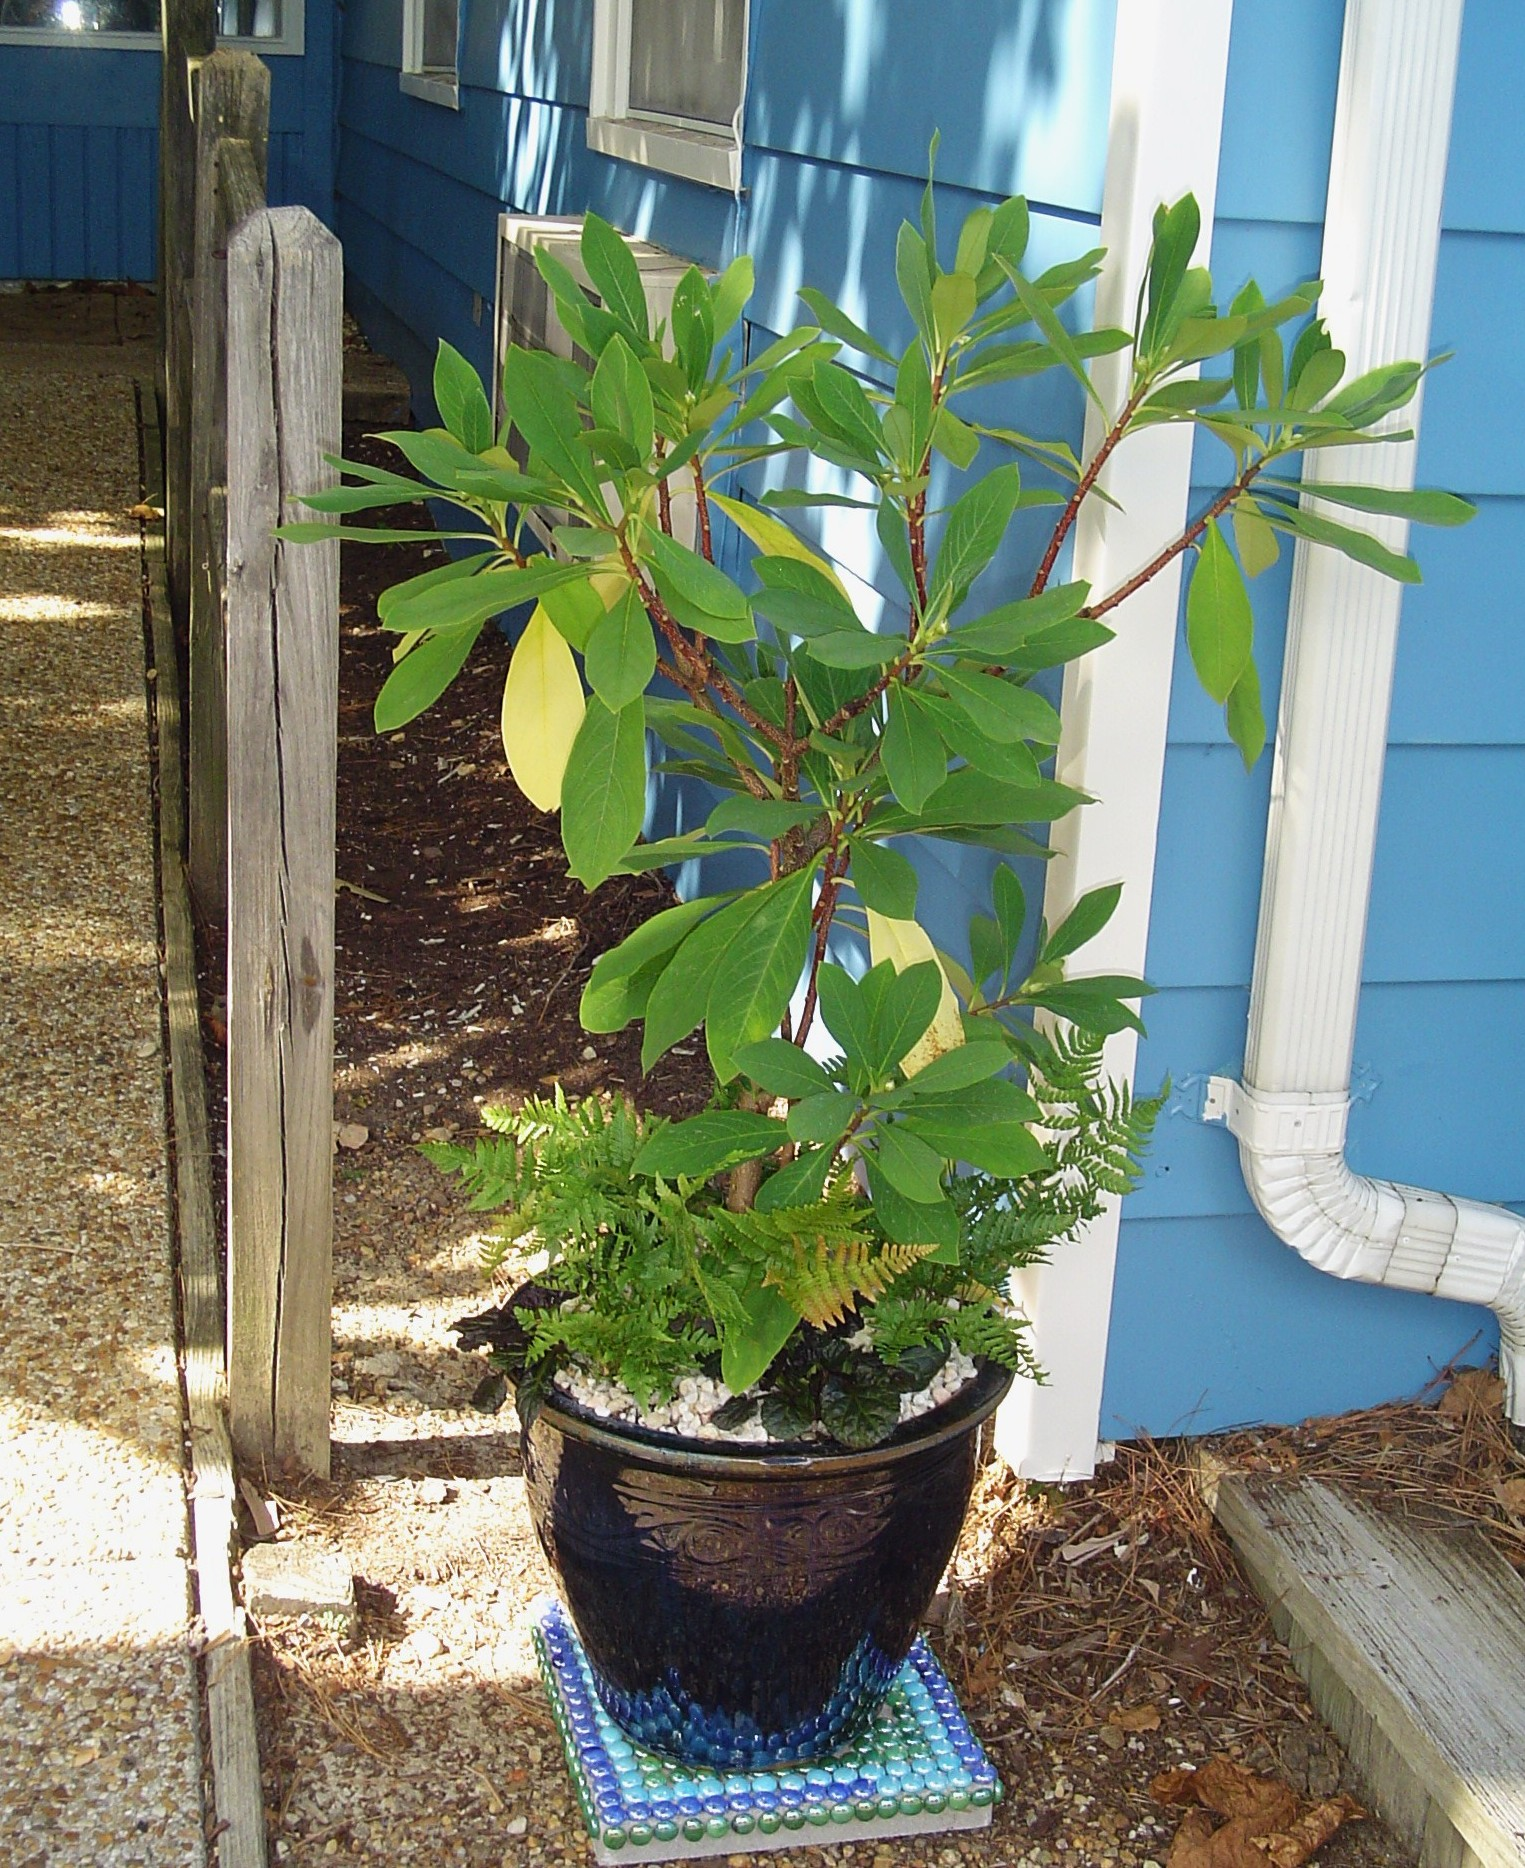 Potted Garden Potted garden forest garden sept 17 2013 this century planting 005 a potted garden workwithnaturefo